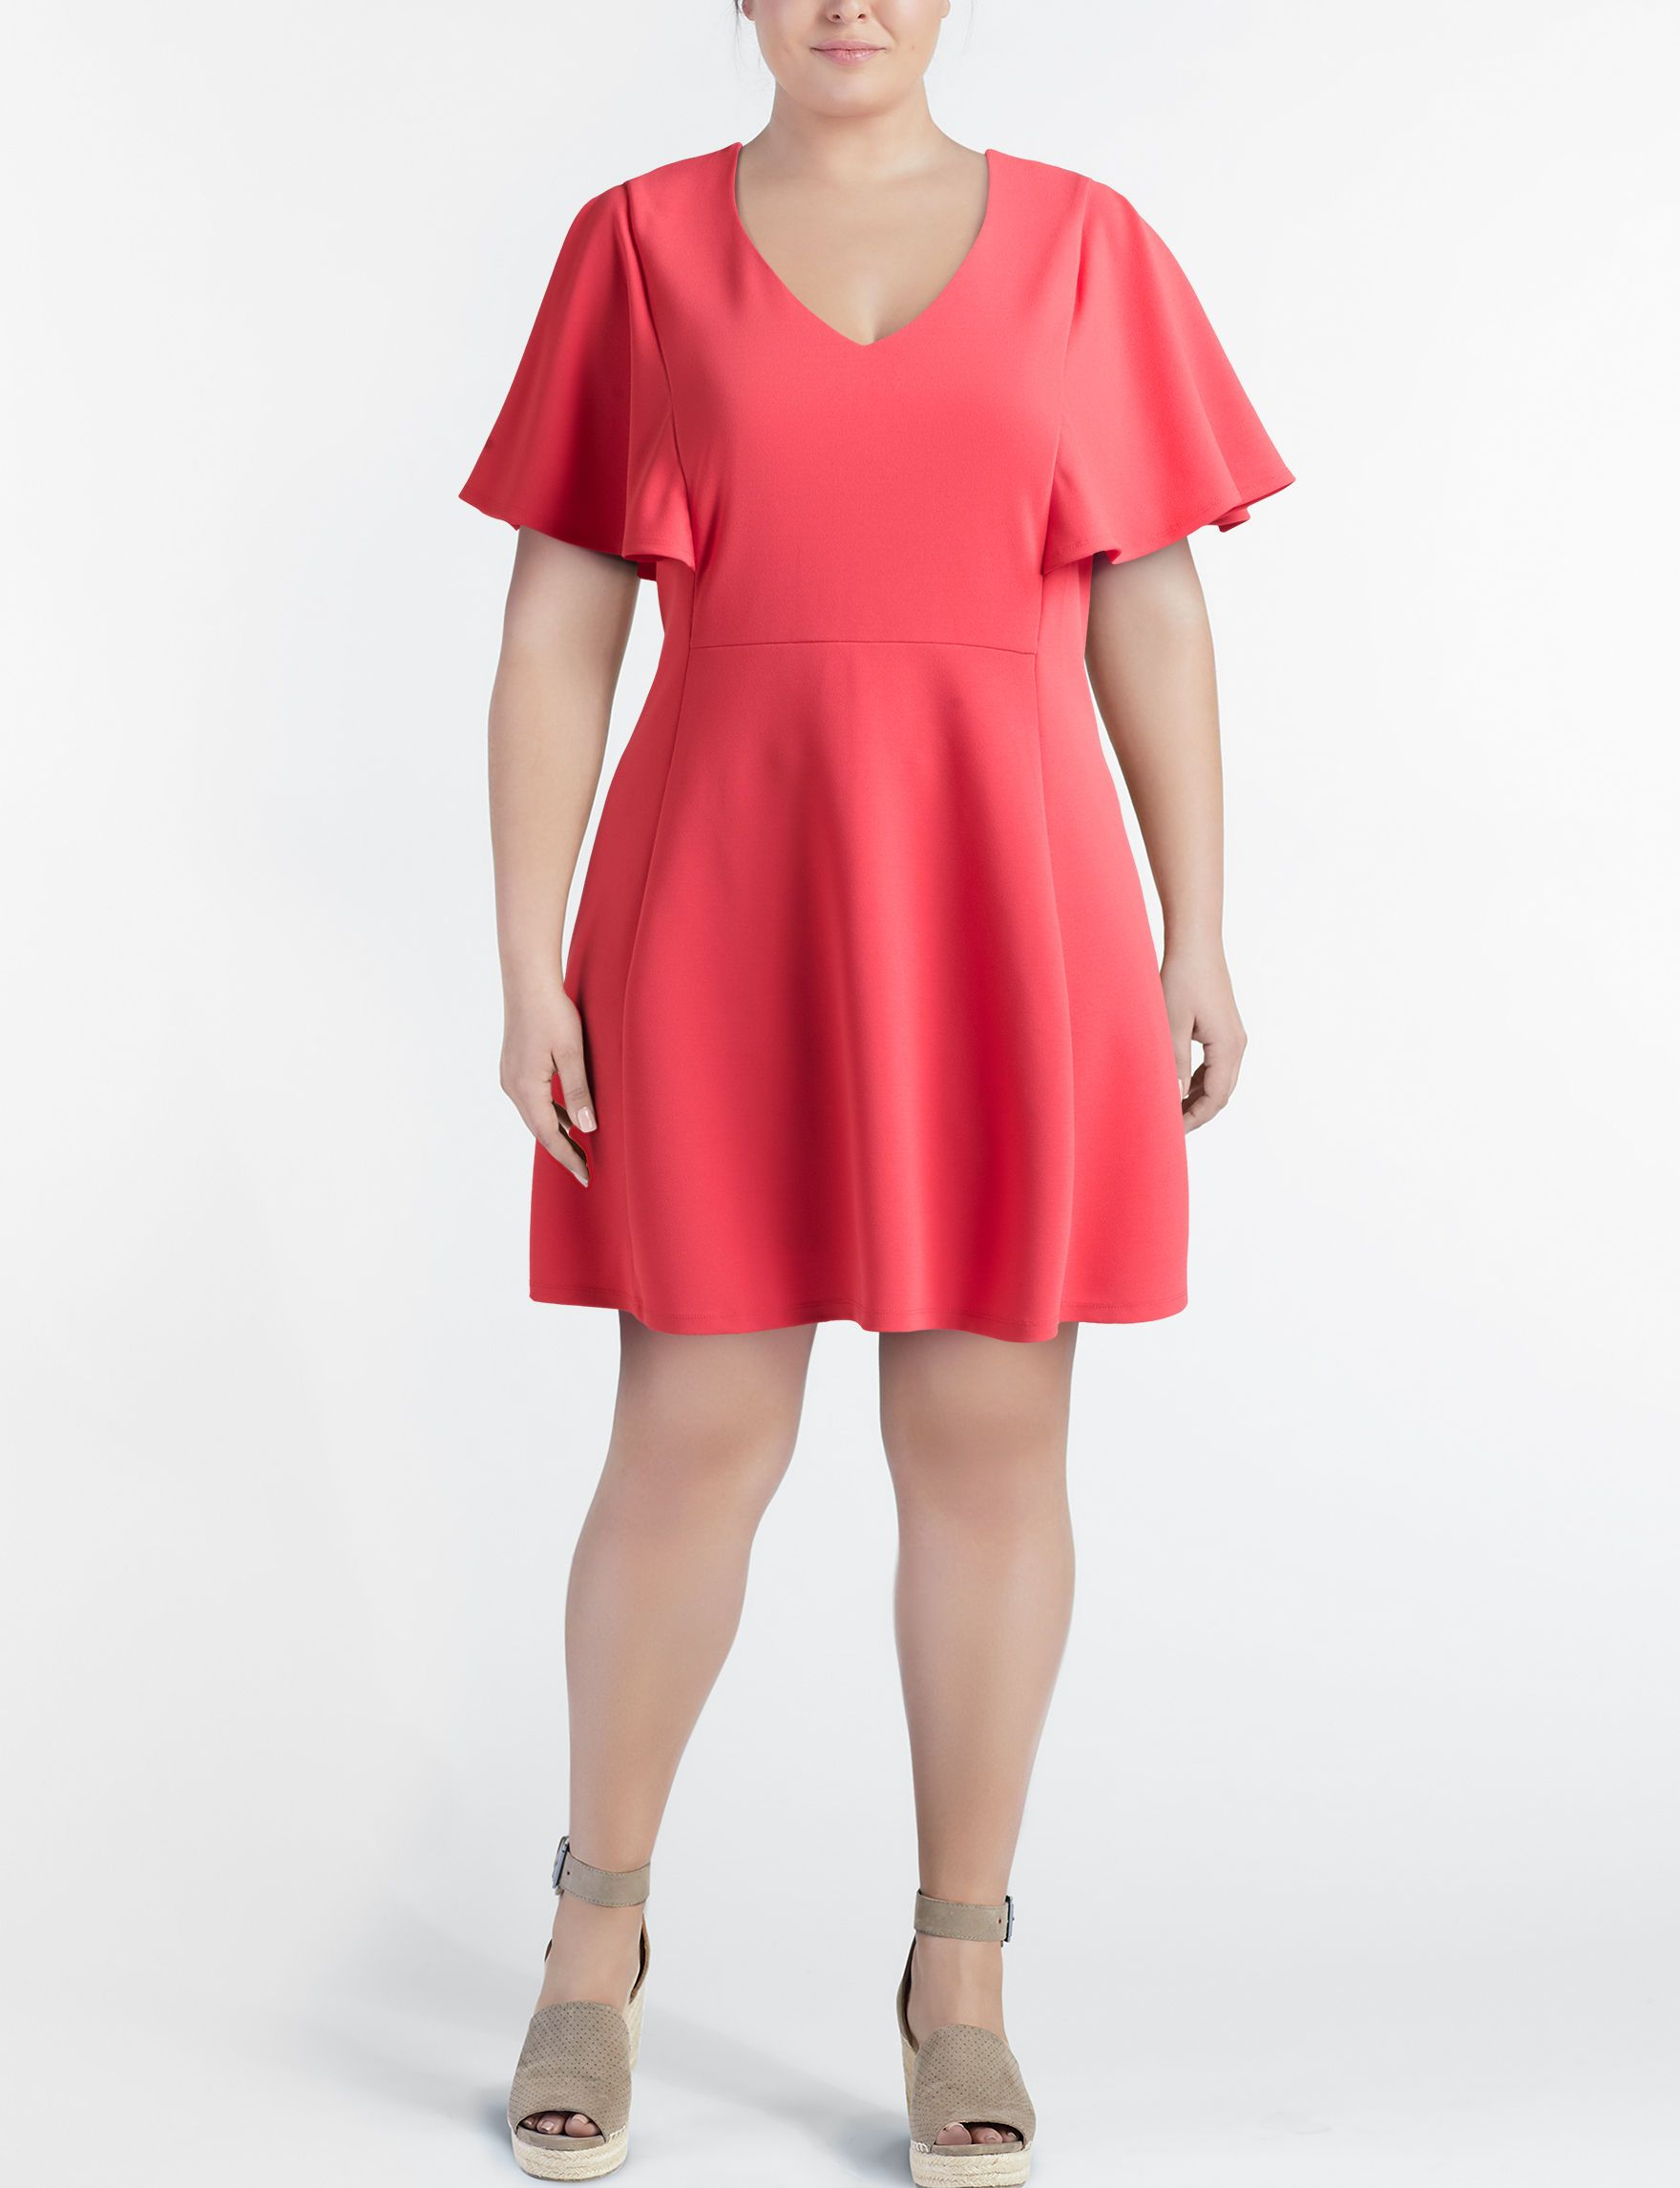 Ronni nicole coral everyday casual aline dresses